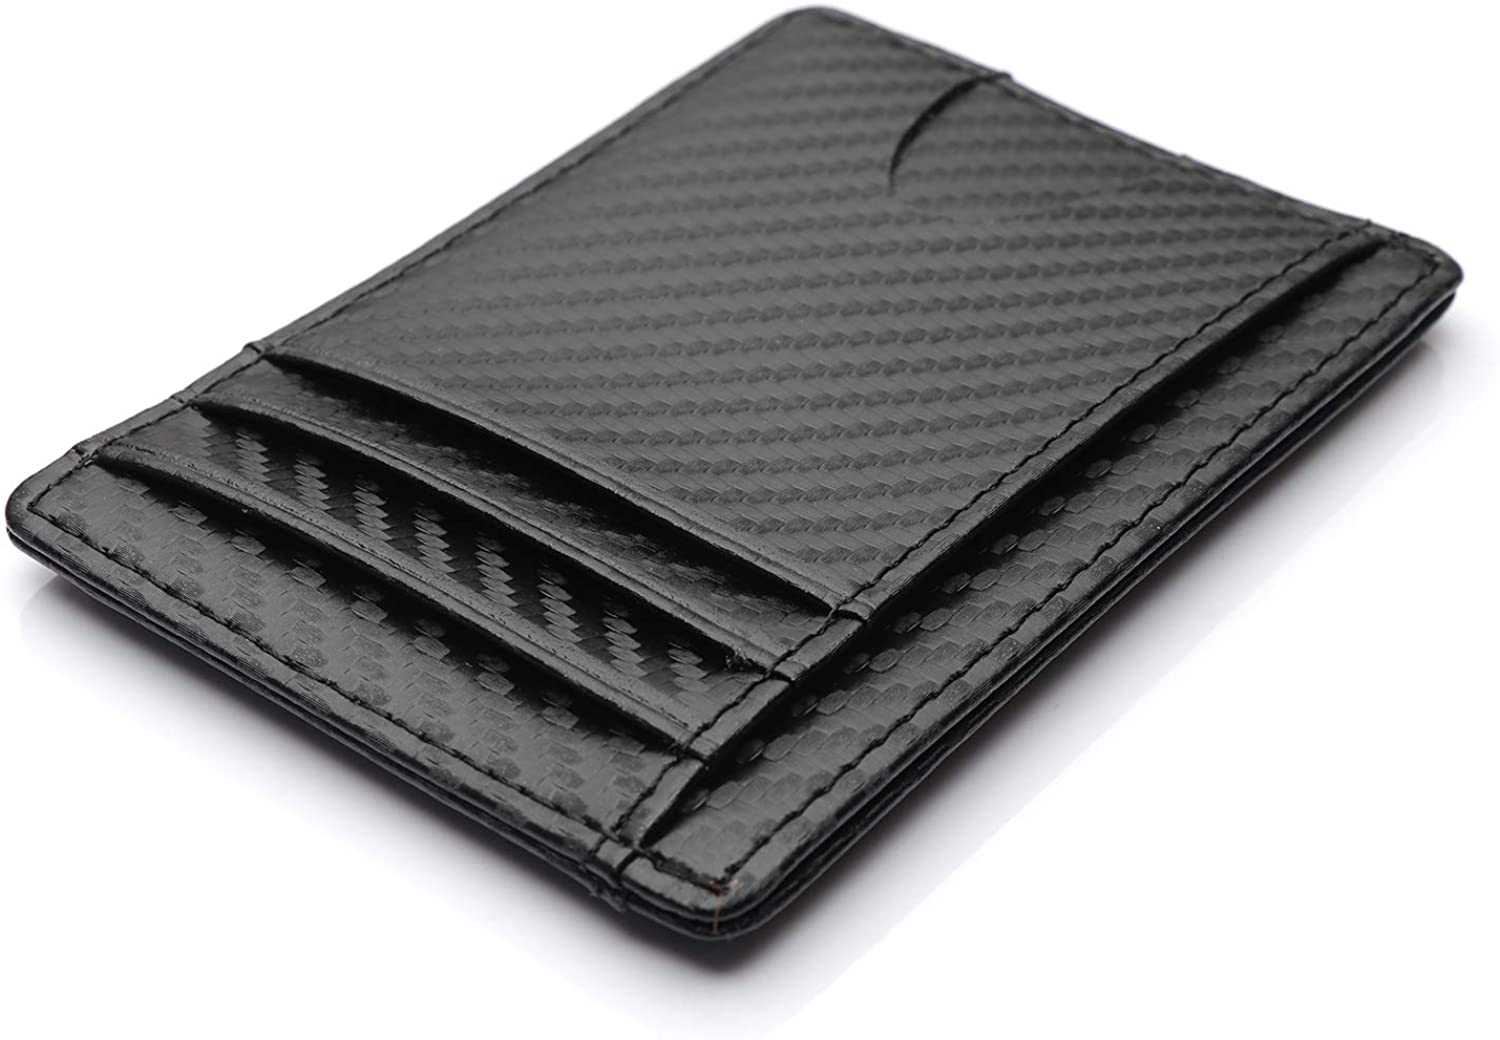 DeepRoar Business Card Cases Slim Leather Wallet with Large Pocket for Men Women